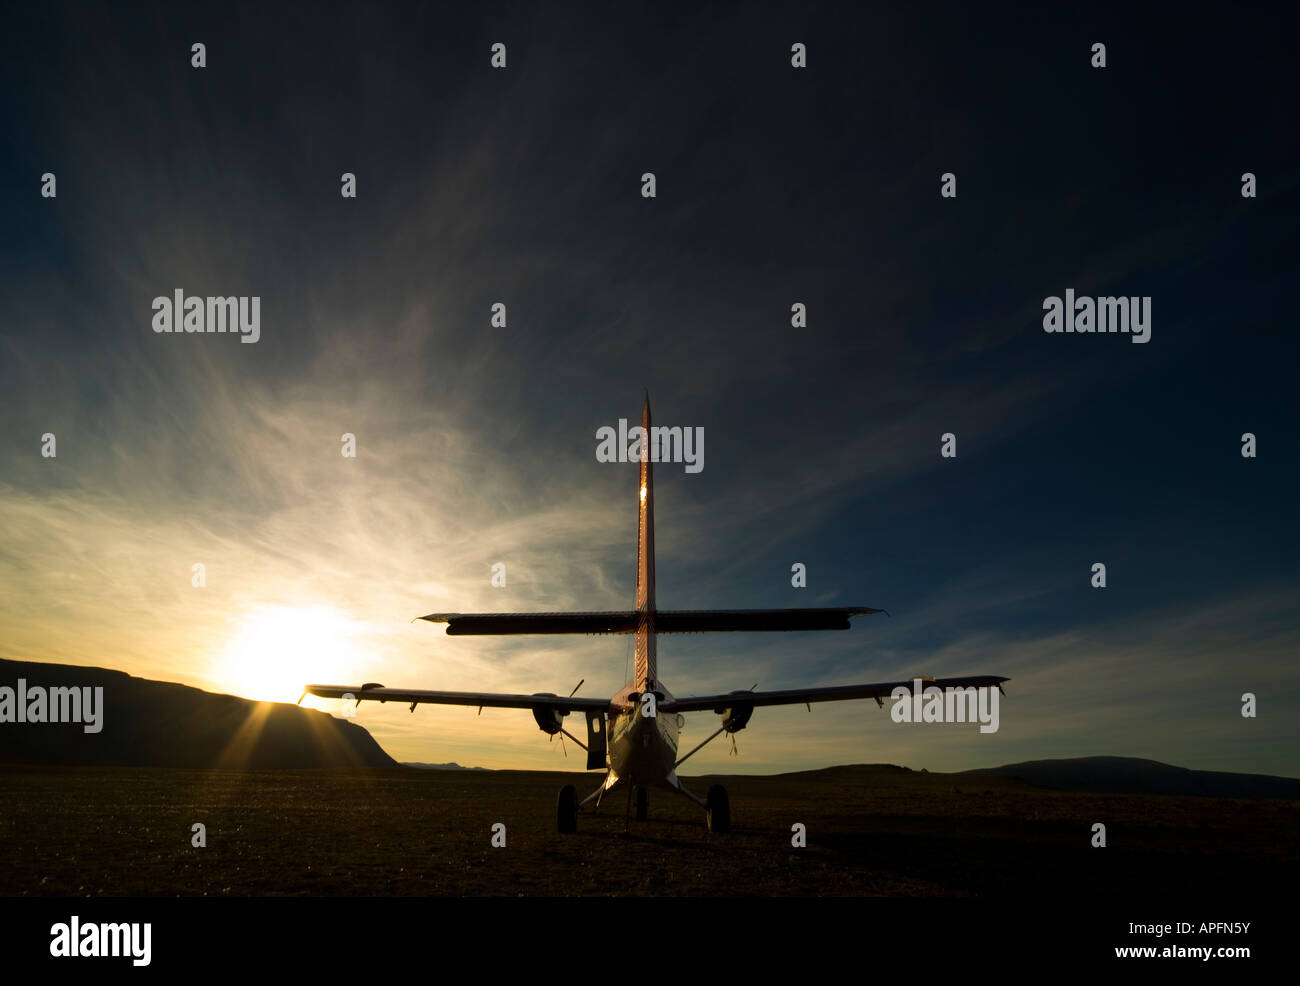 Small aircraft silhouette - Stock Image